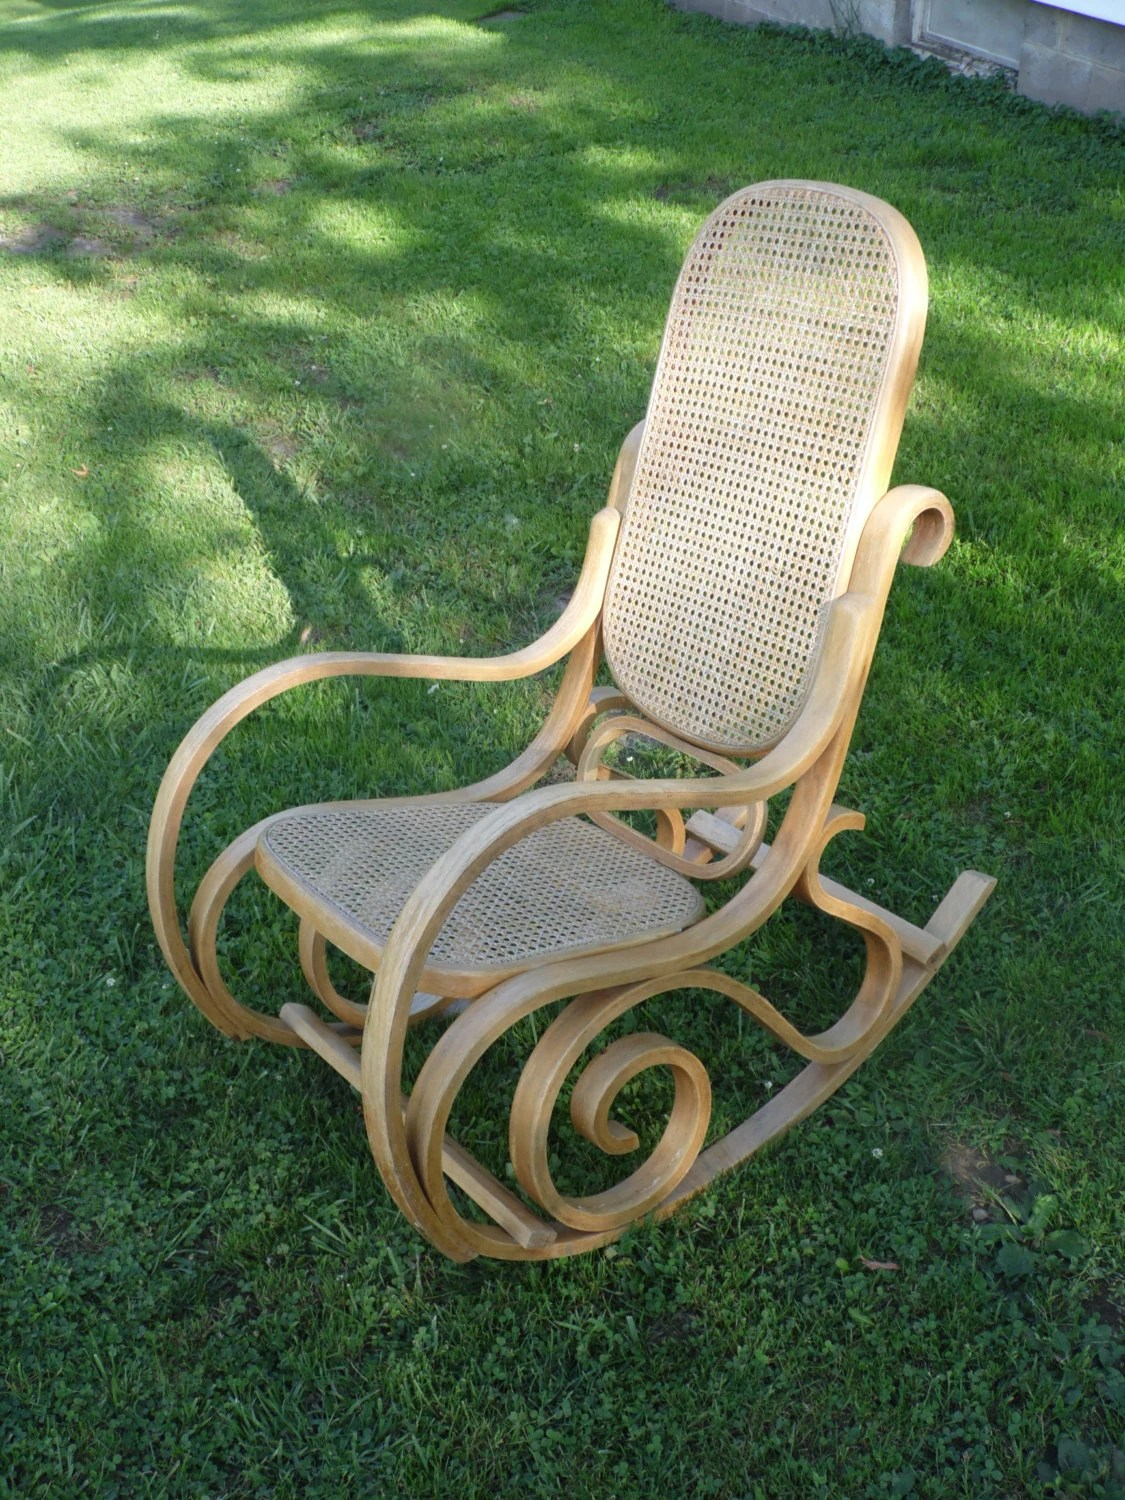 Bent Wood Chairs Sale Bentwood Chair Thonet Bentwood Chair Bentwood Rocker